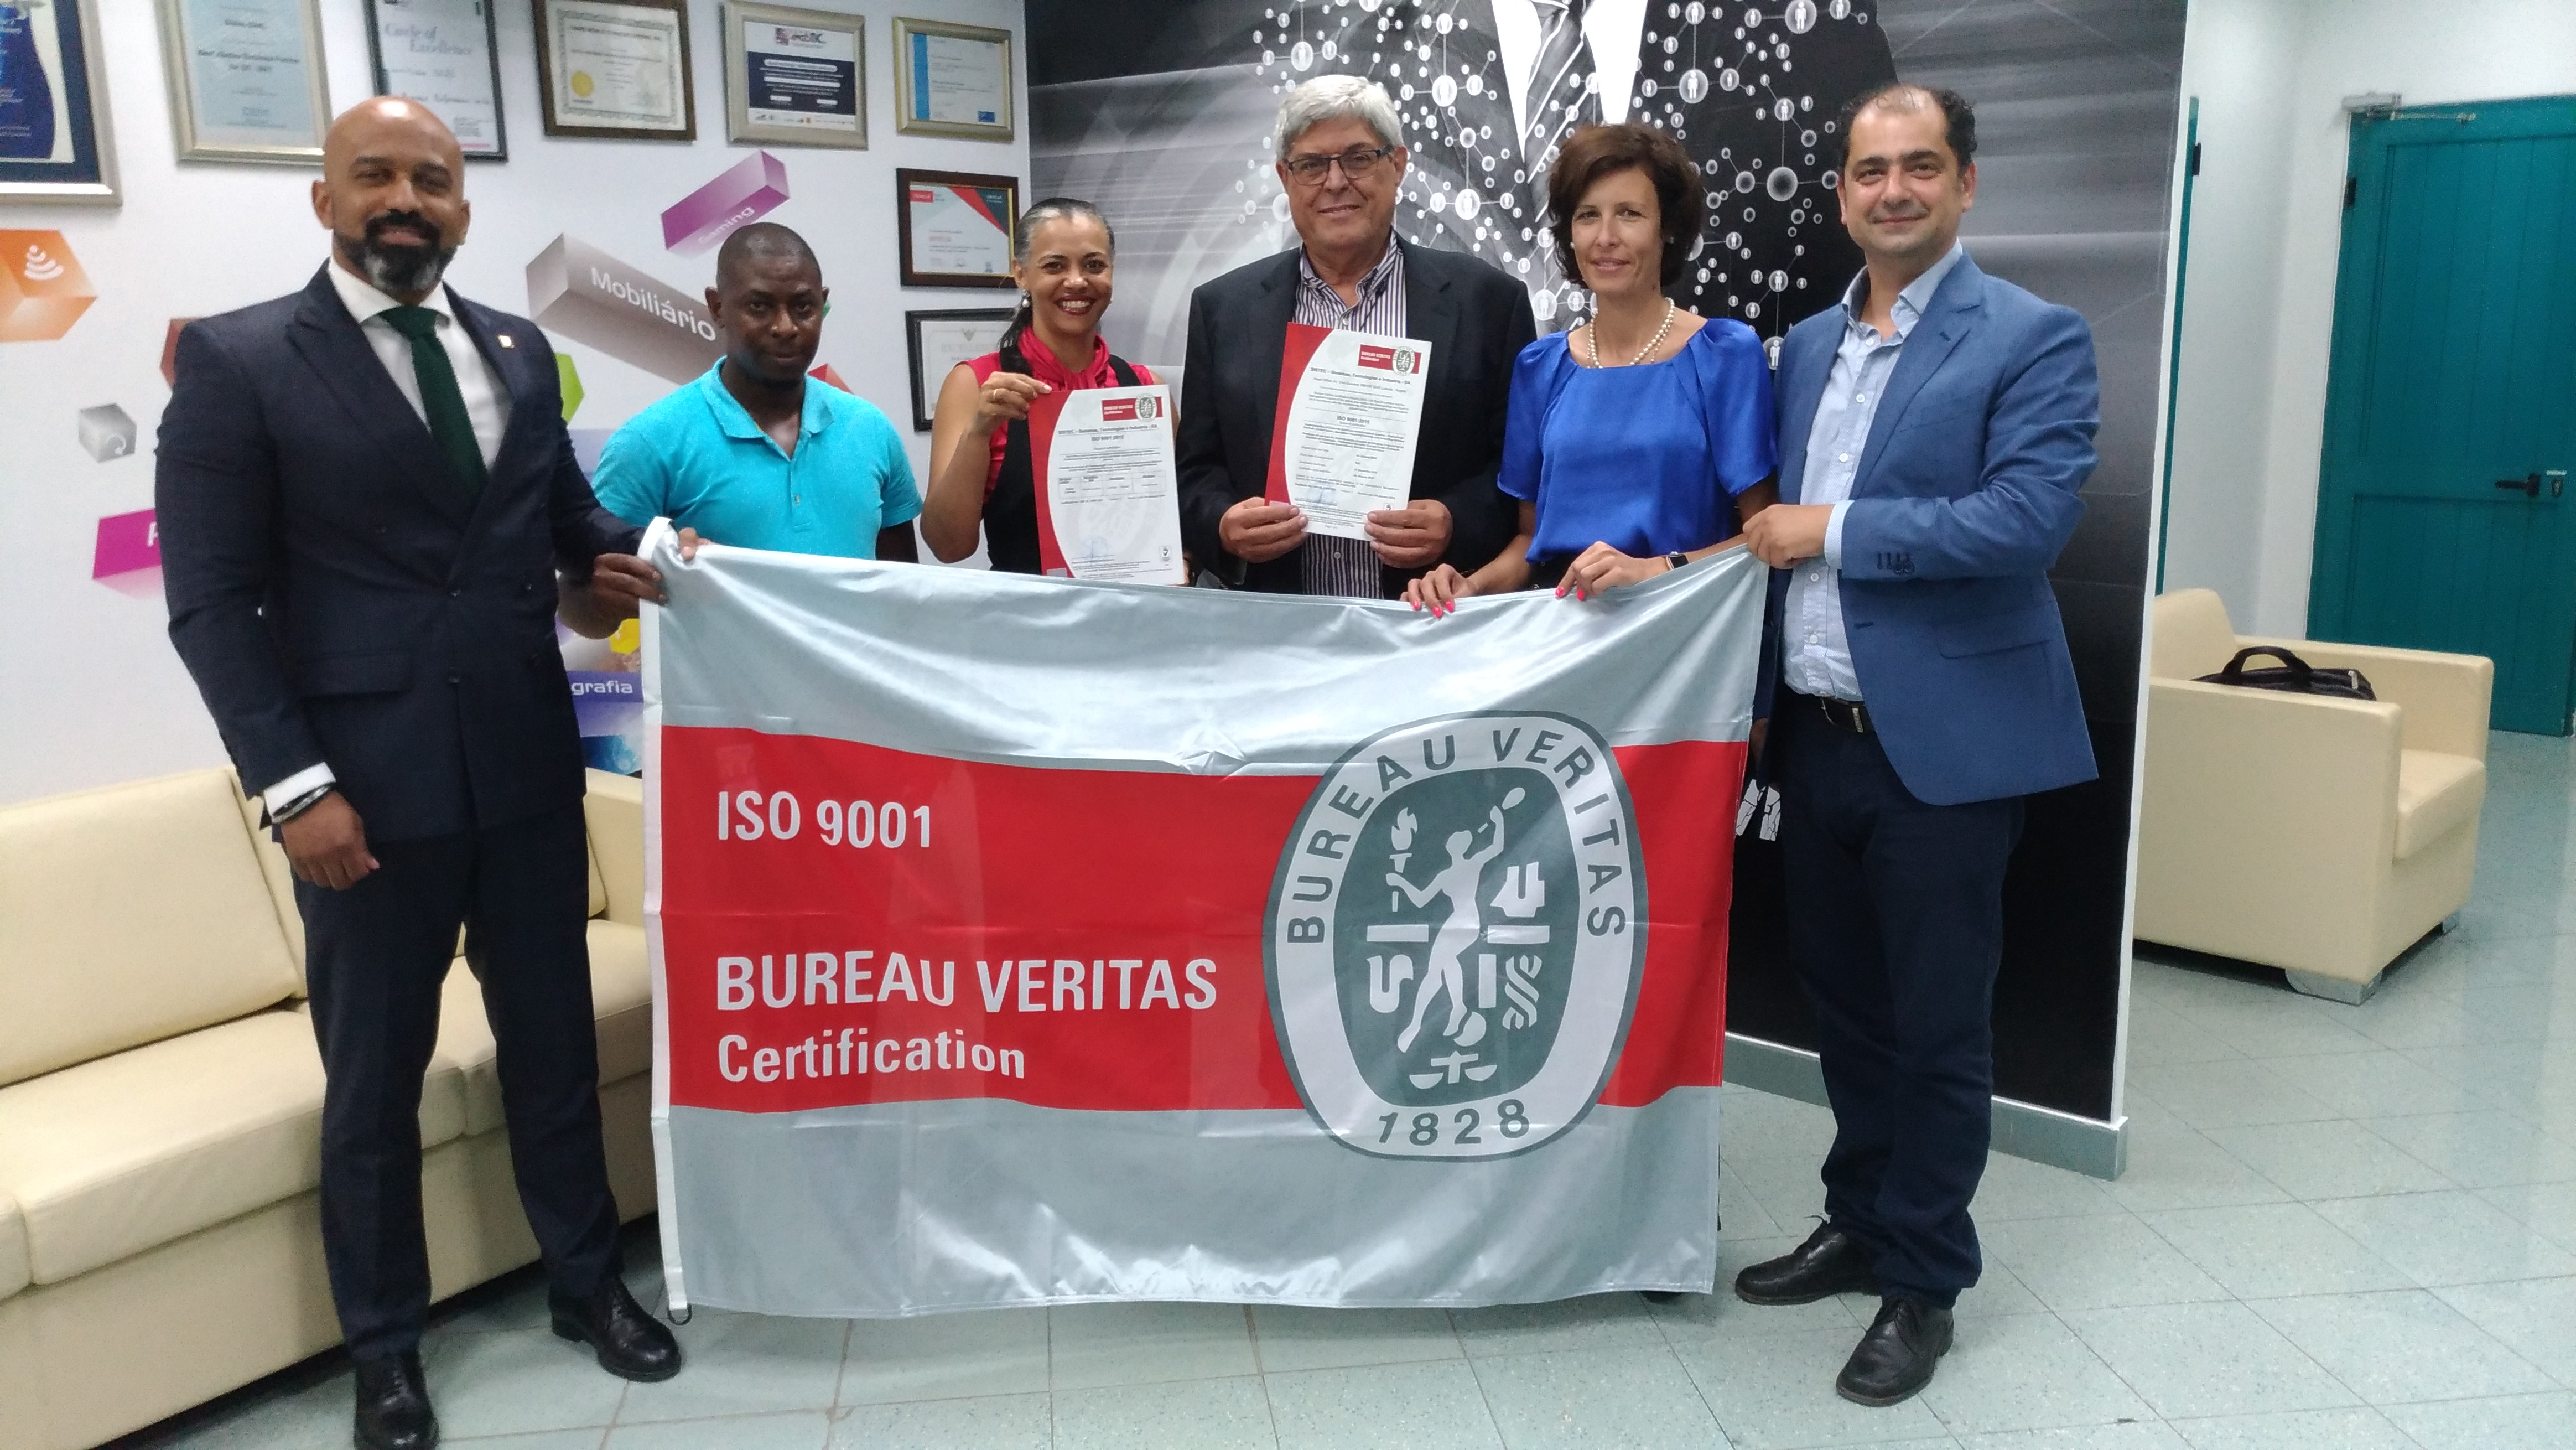 SISTEC wins international ISO 9001 certification: 2015 | Less wires